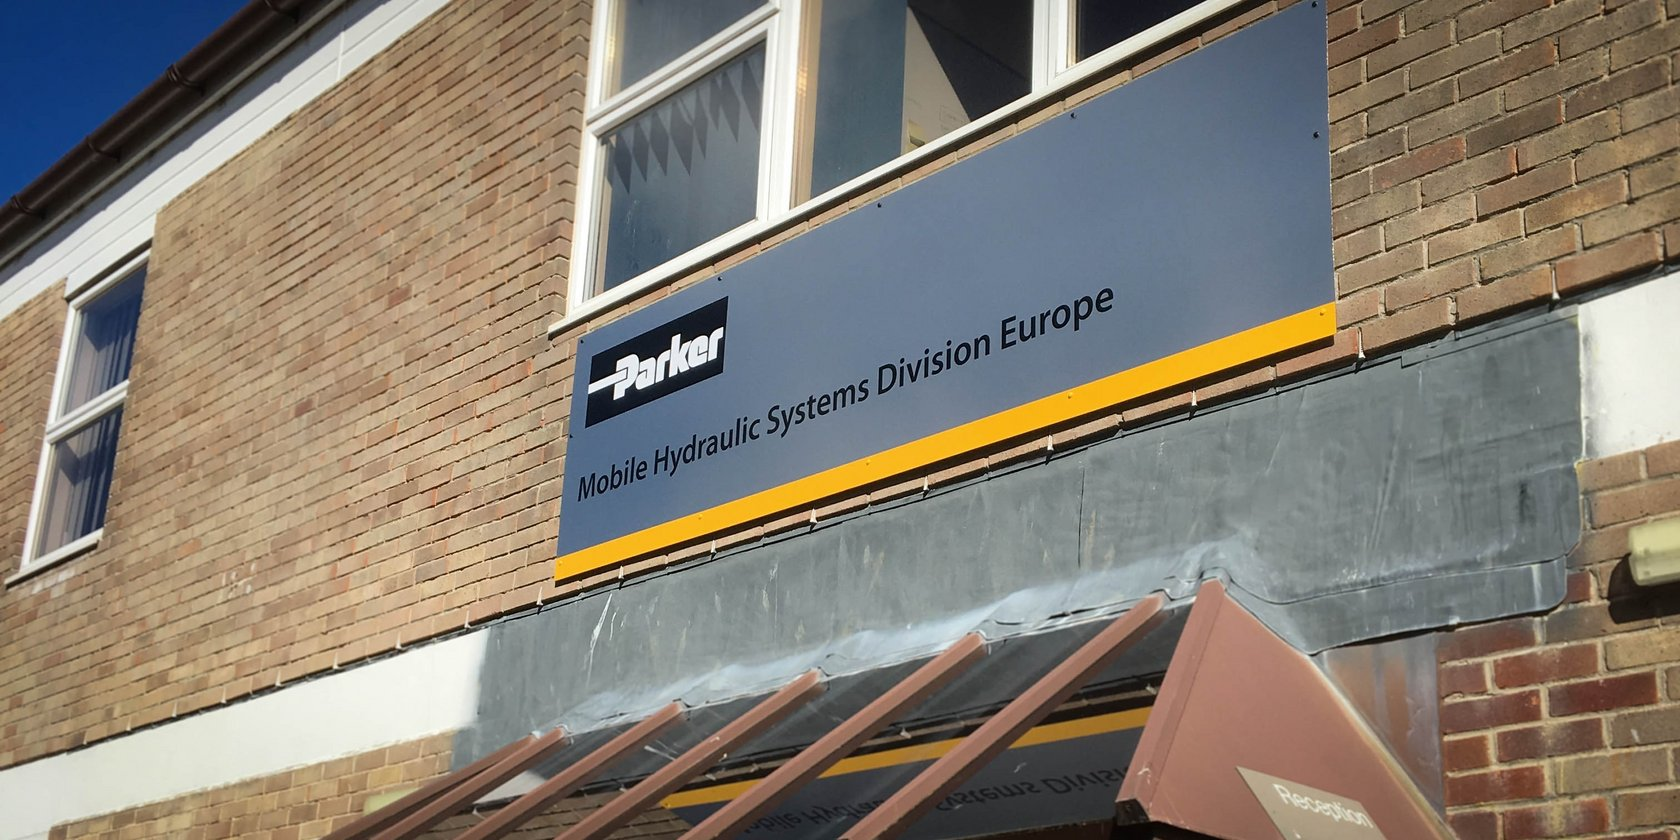 External Wall Mounted Sign for Parker Hannifin